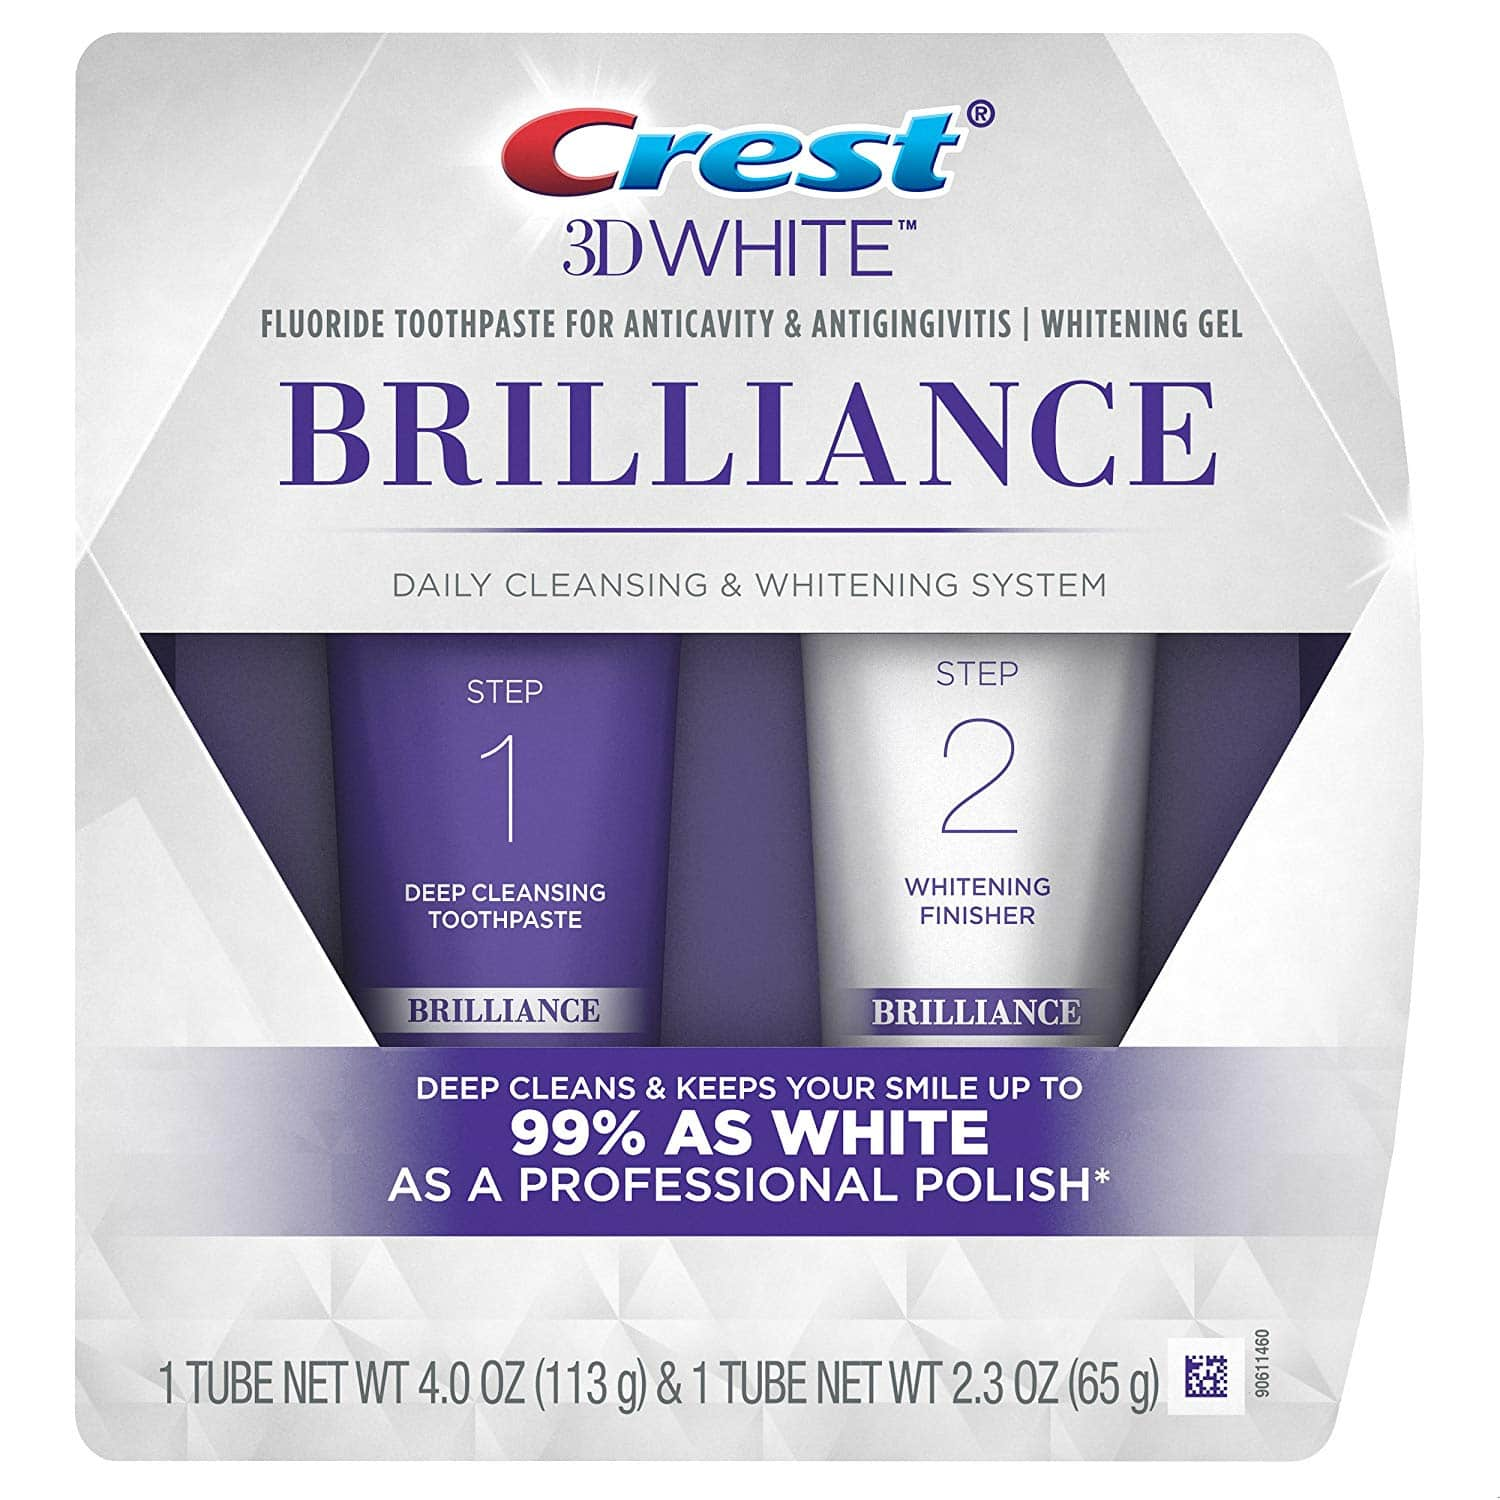 Add-on Items: Crest 3D White Whitening Therapy Enamel Care Toothpaste $3.88 & Whitening Gel System $7.96